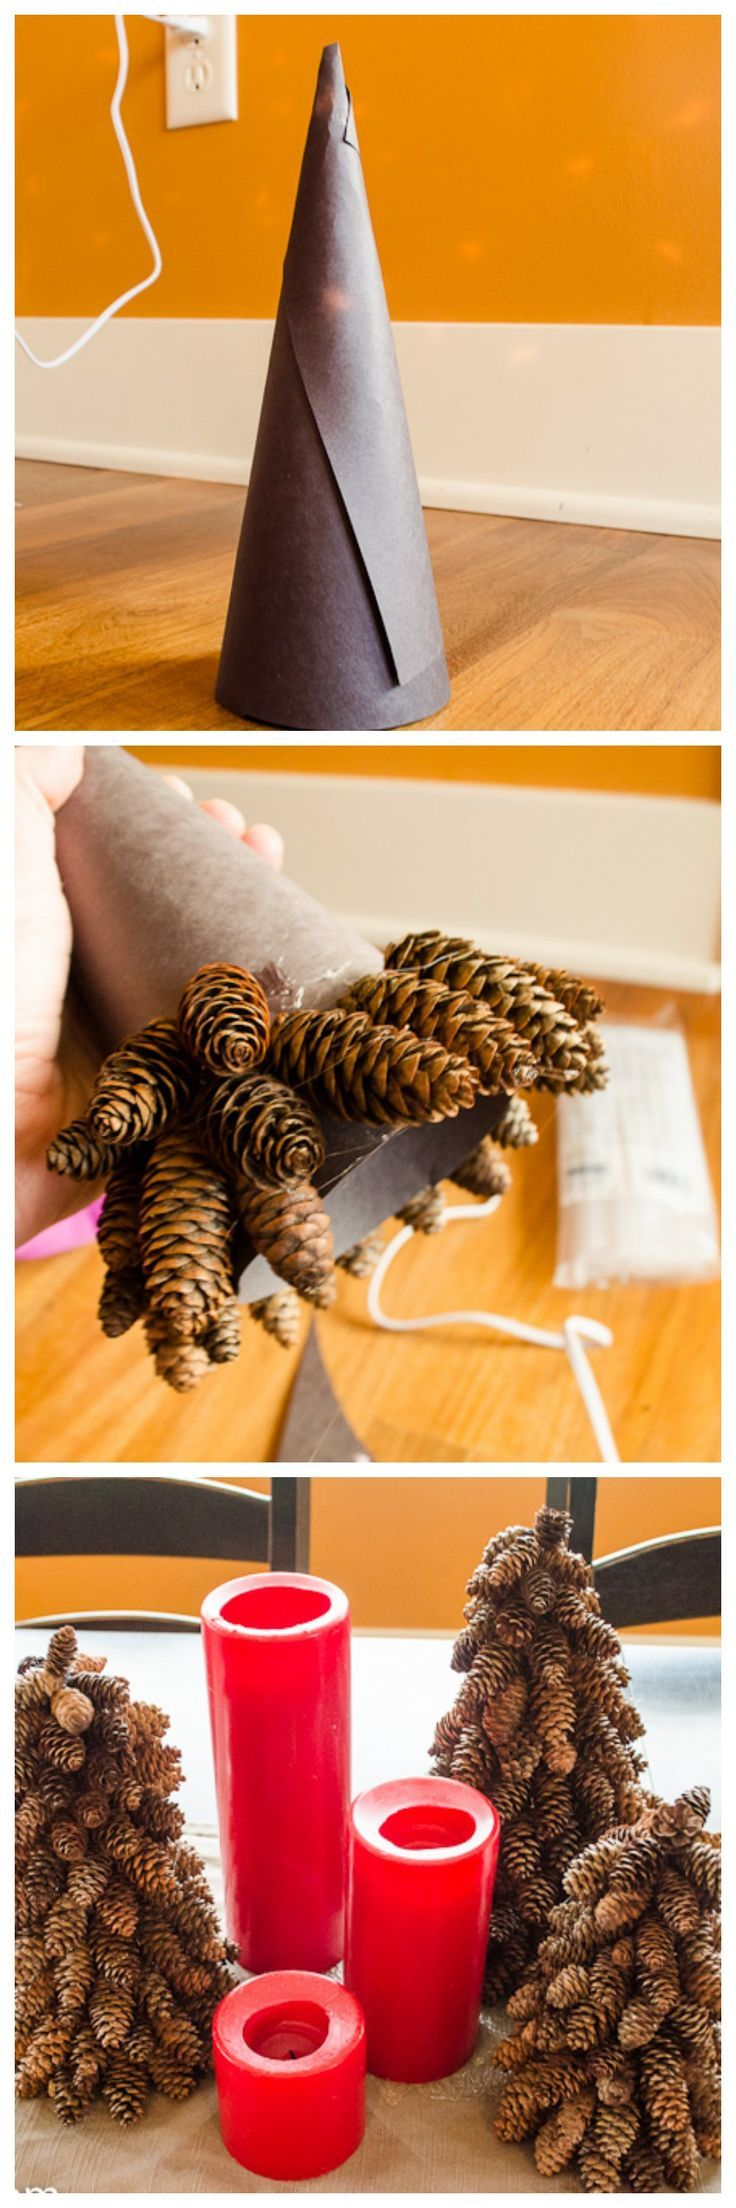 DIY pinecone Christmas trees - so easy to do, and costs next to nothing!